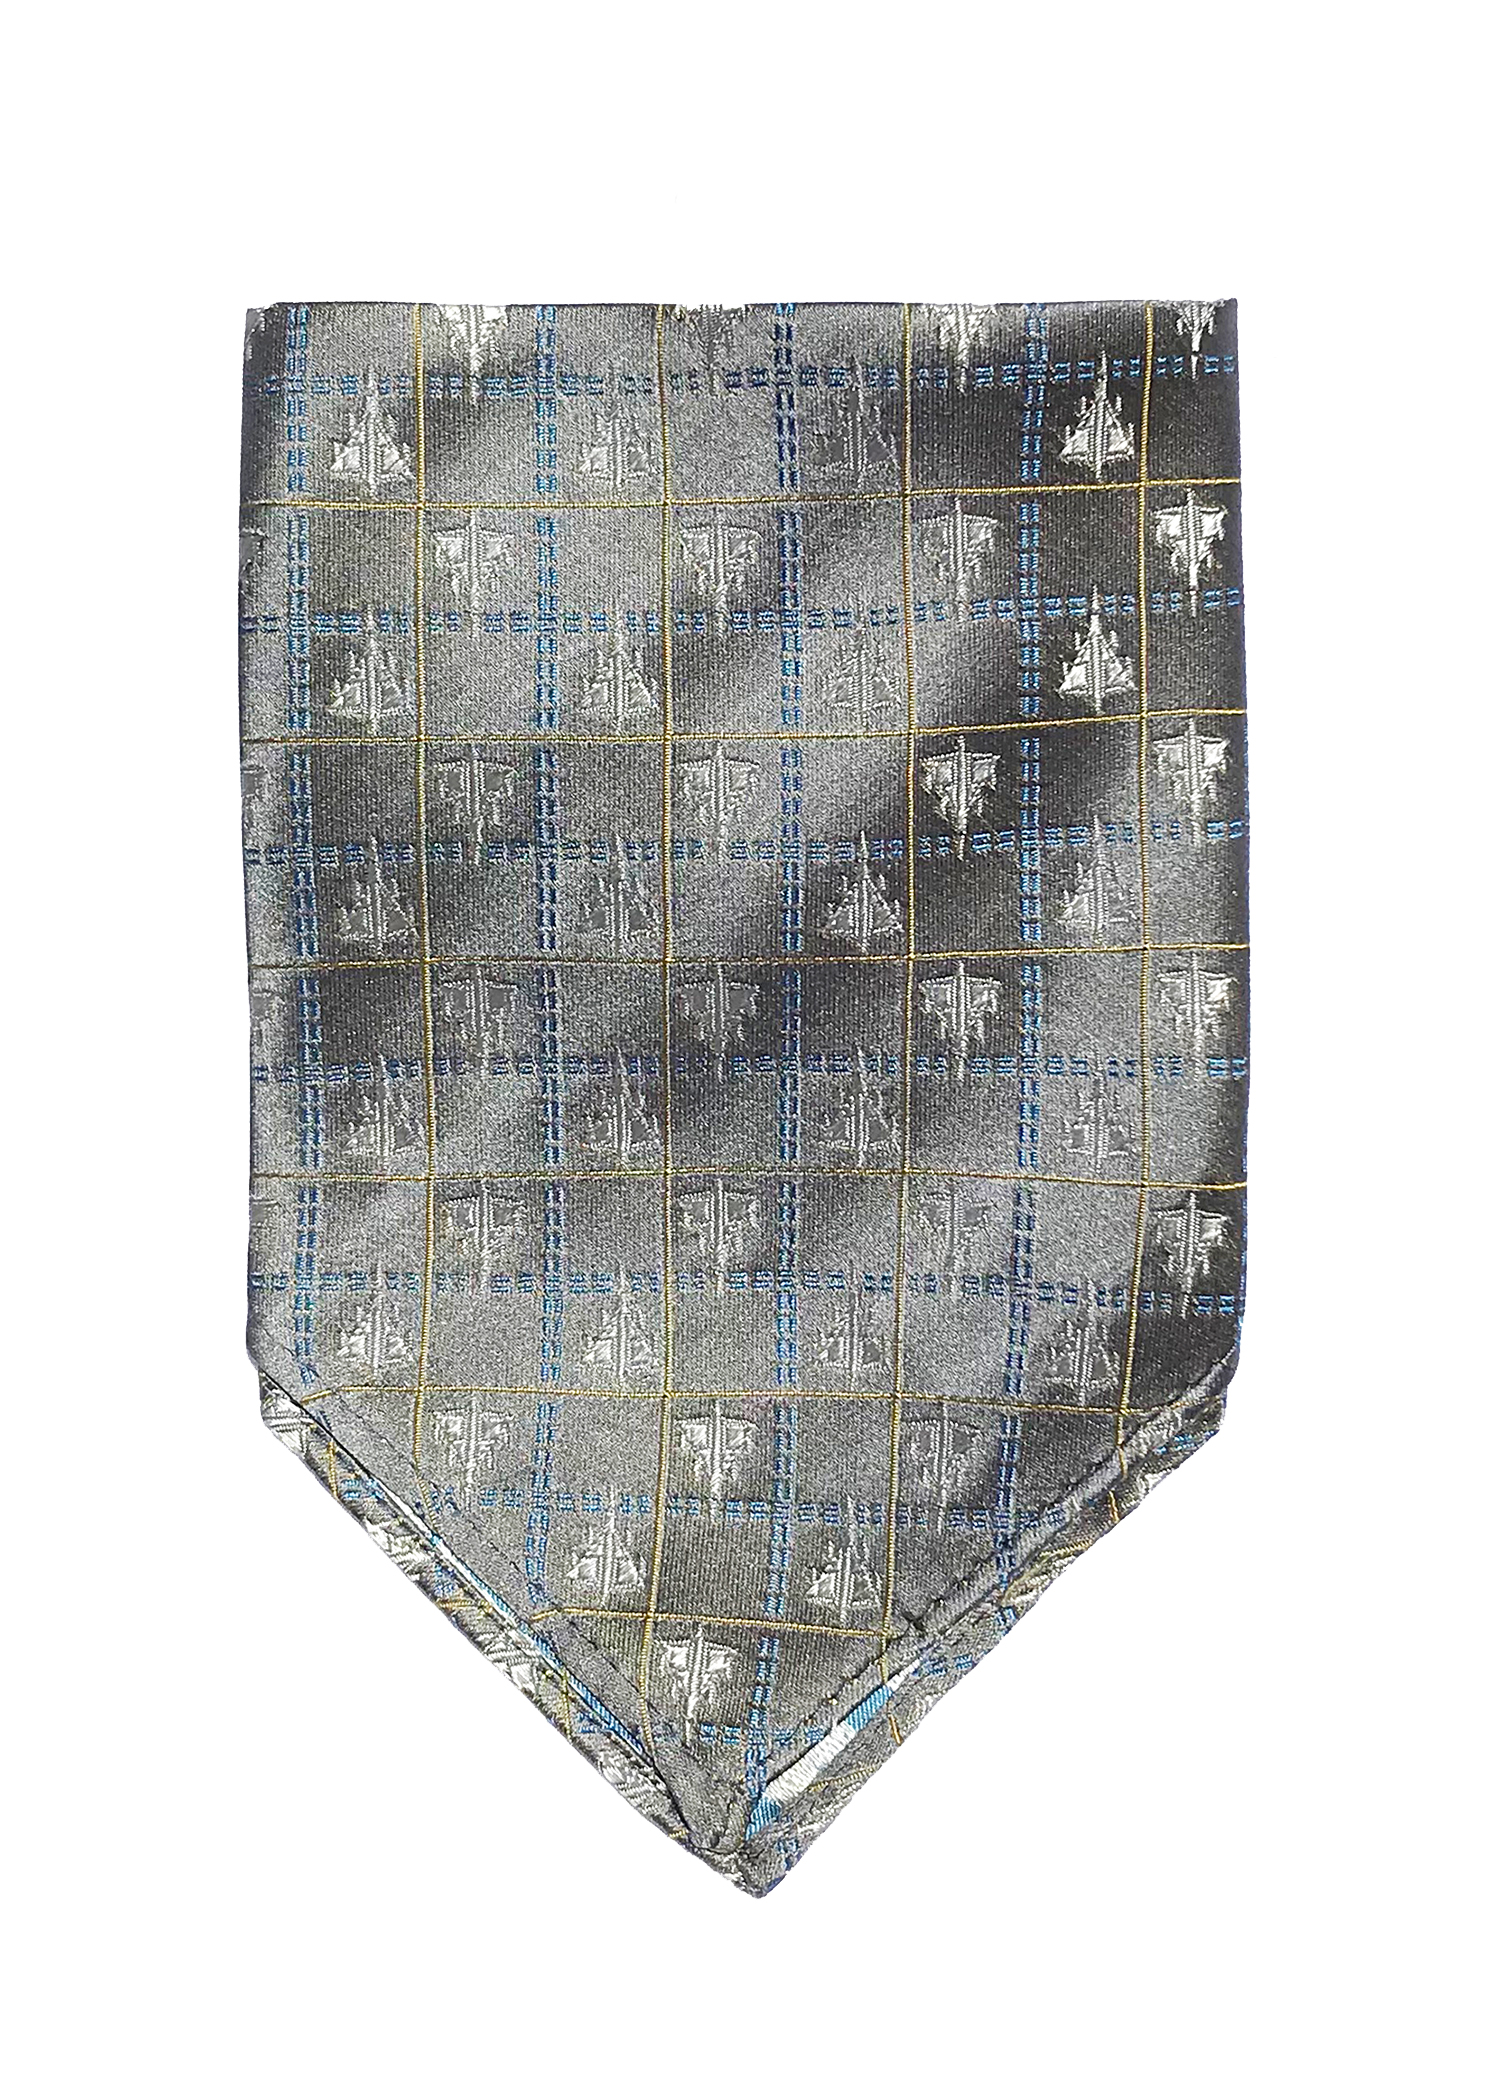 doppeldecker design aviation aircraft airplane pocket square b58 b-58